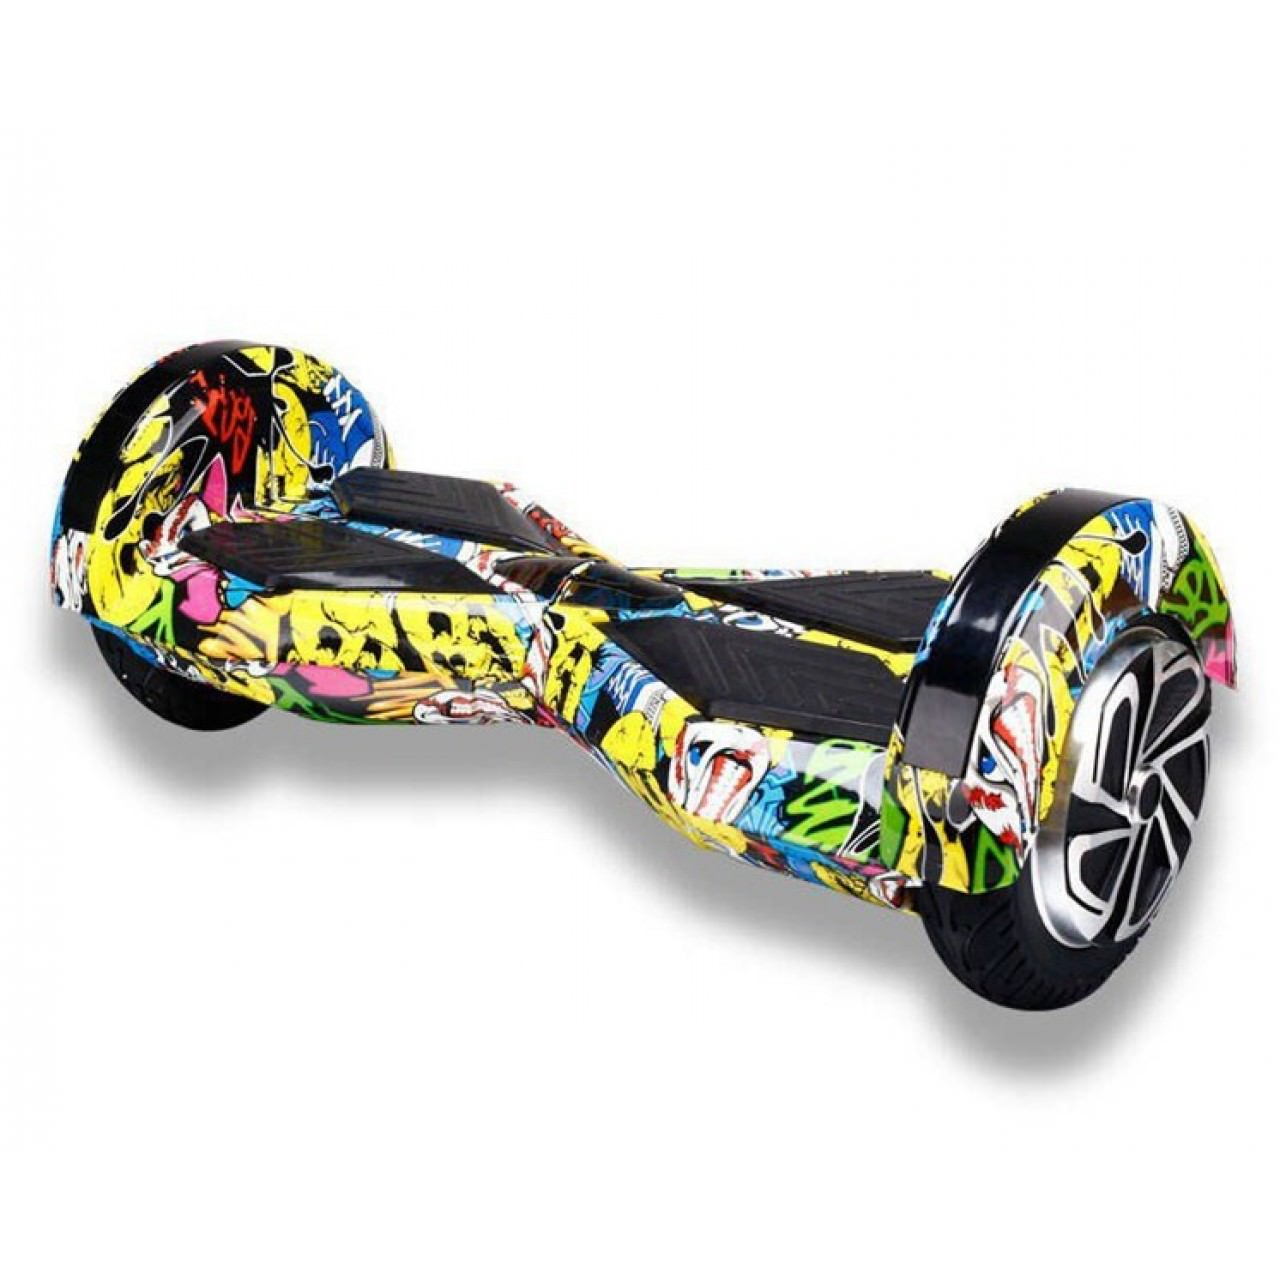 hoverboard hip hop 8 inch hover dream 77 ood. Black Bedroom Furniture Sets. Home Design Ideas